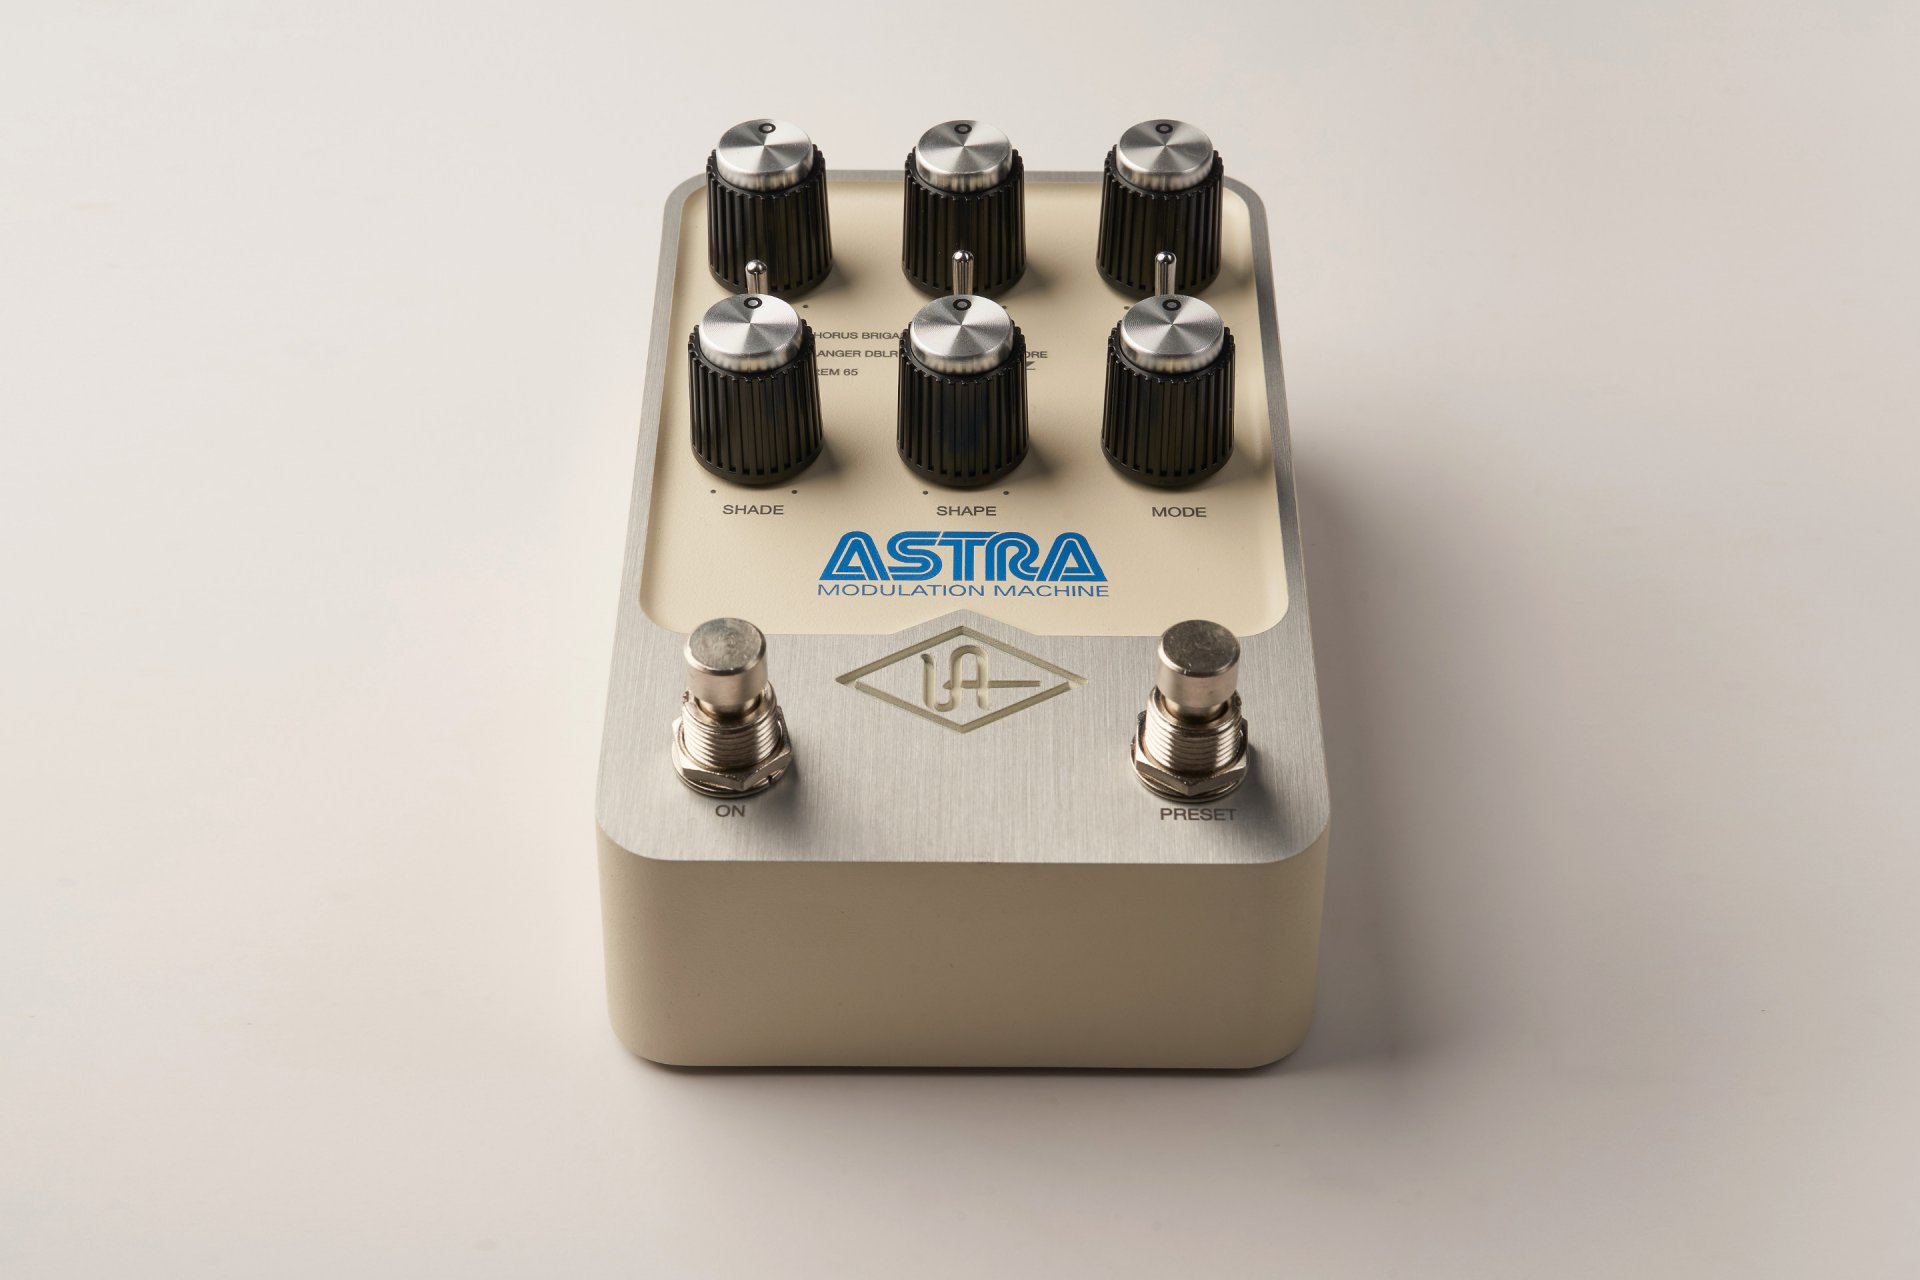 UNIVERSAL AUDIO GPM-ASTRA UAFX ASTRA MODULATION MACHINE STEREO EFFECTS PEDAL